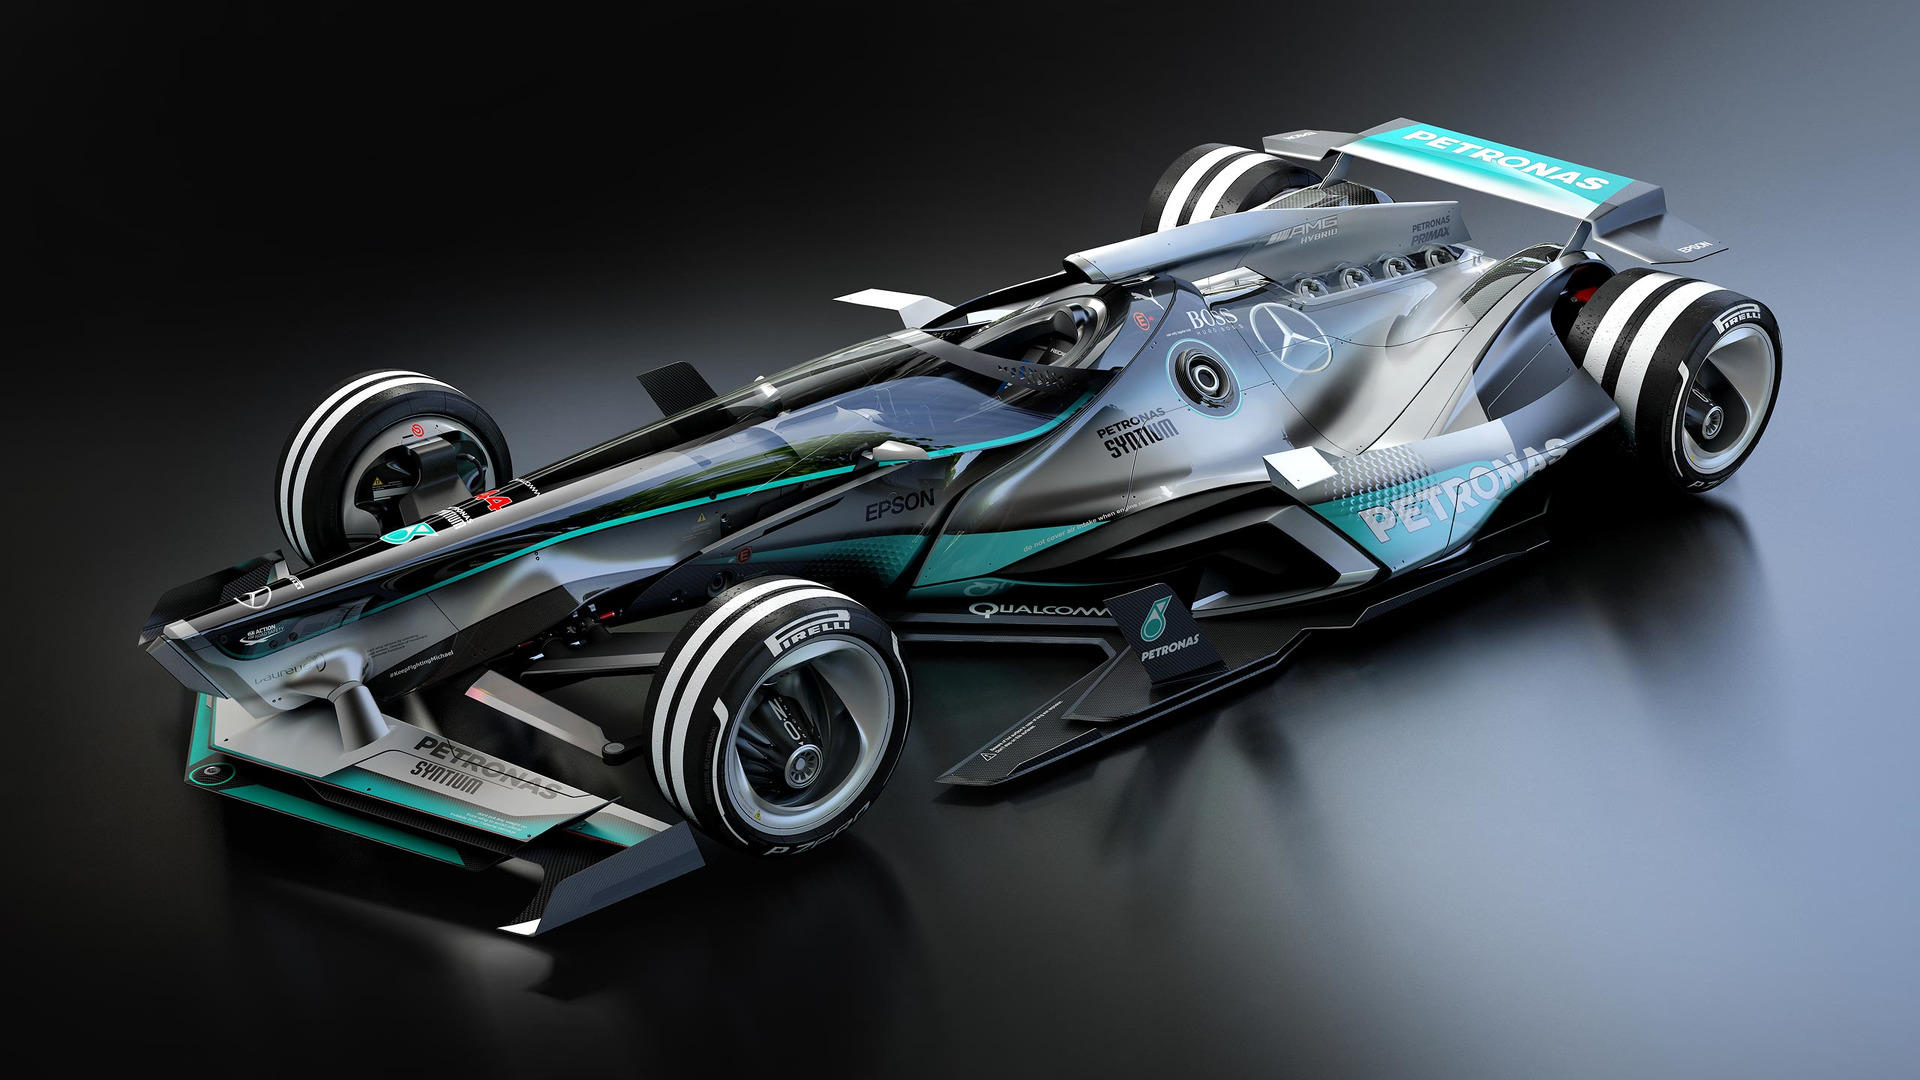 & Will F1 cars look like this in 2030?